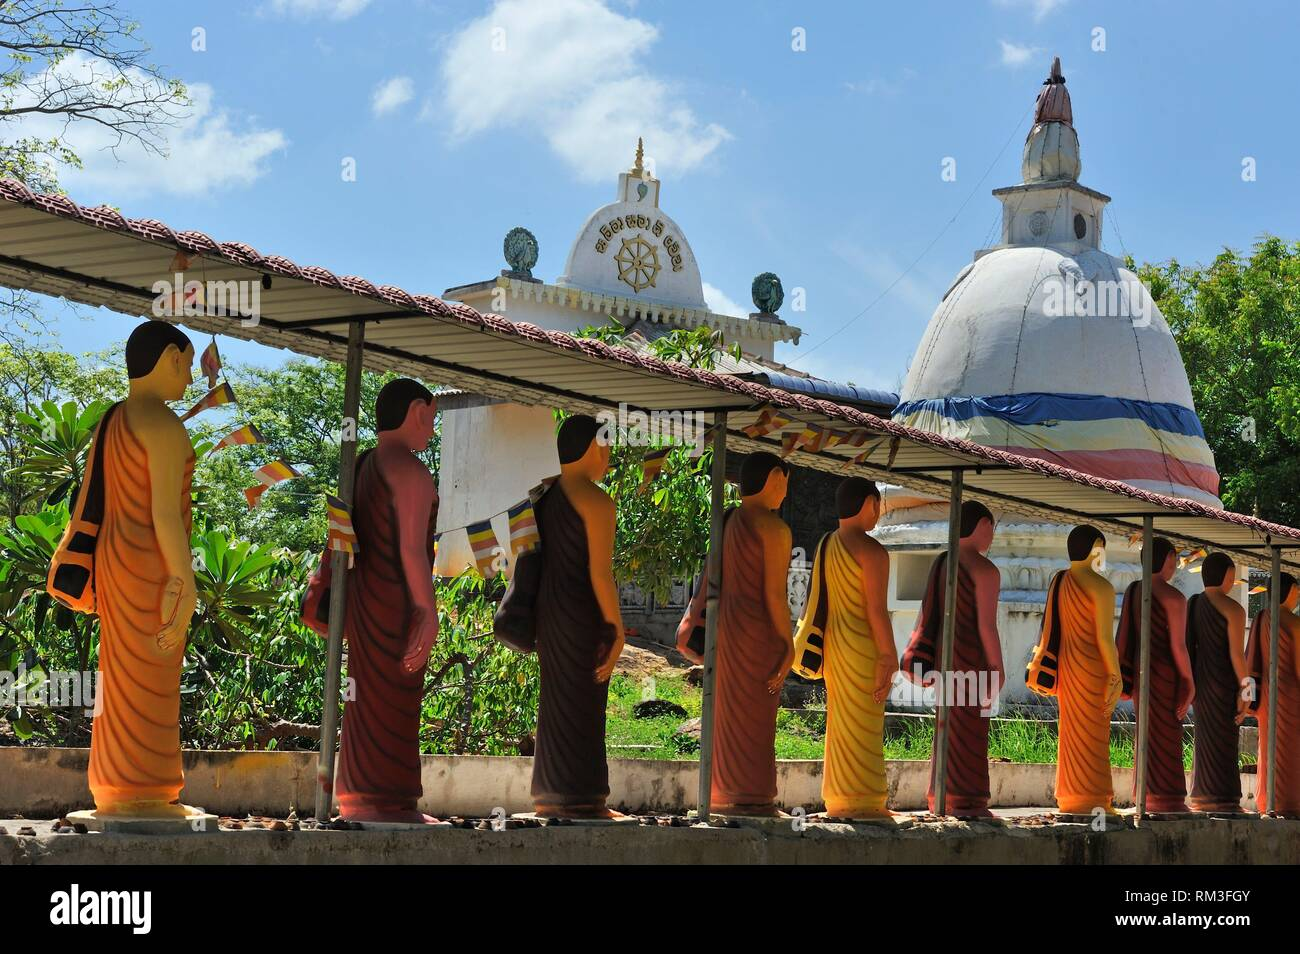 Buddhist Monastery, South Province, Sri Lanka, Indian subcontinent, South Asia. - Stock Image